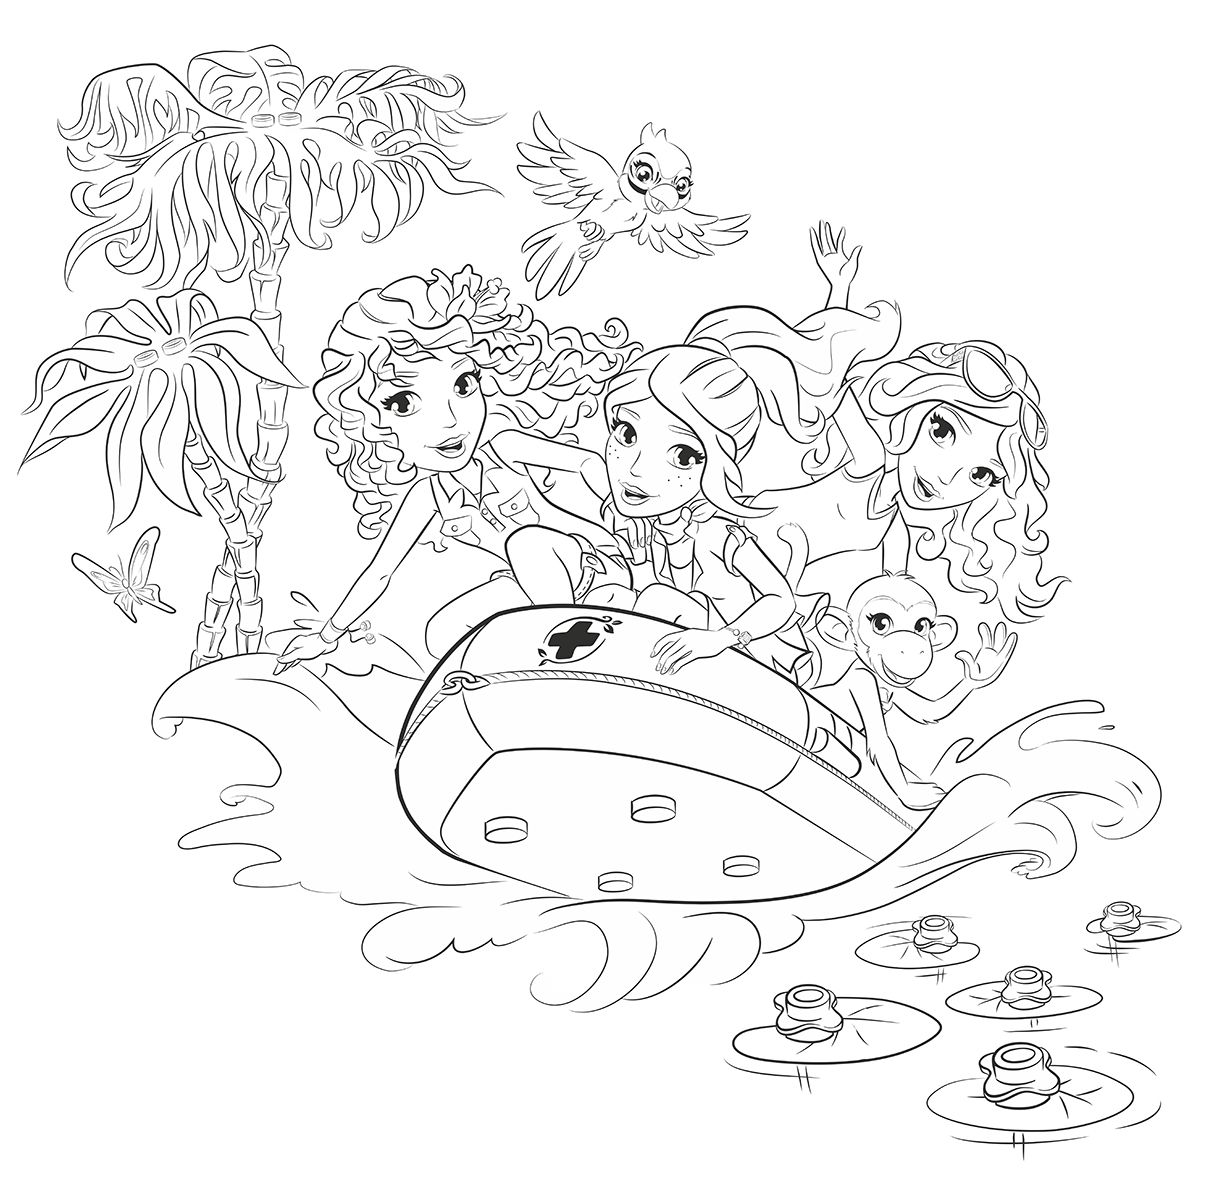 AZ Coloring - Tons of Free Coloring Pages | Crafts\'n stuff for the ...